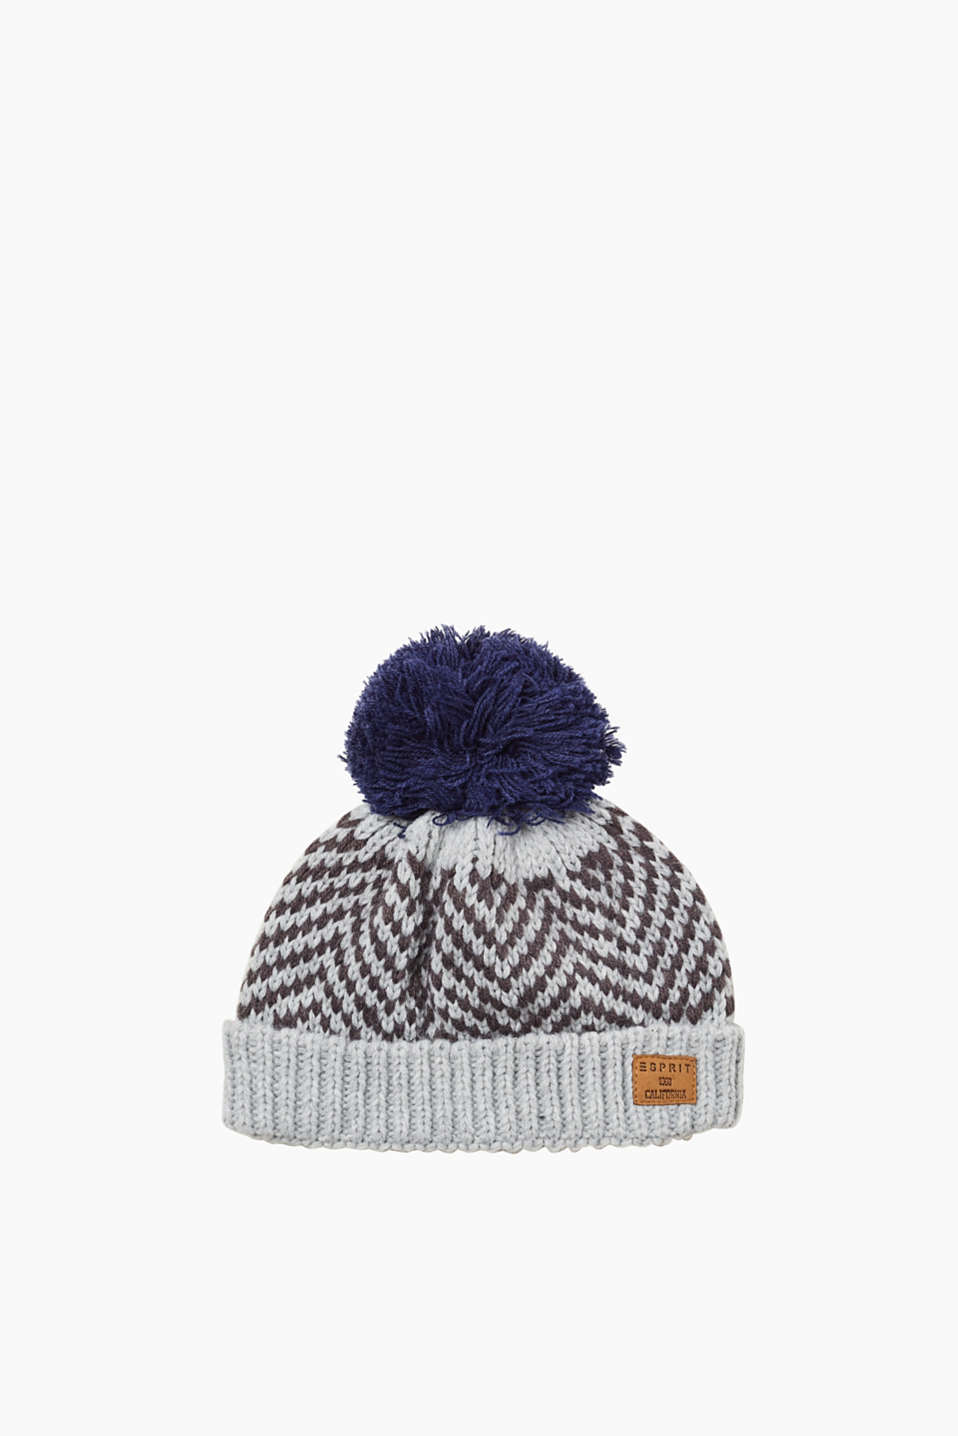 Esprit - Knitted hat with a pompom and fleece lining